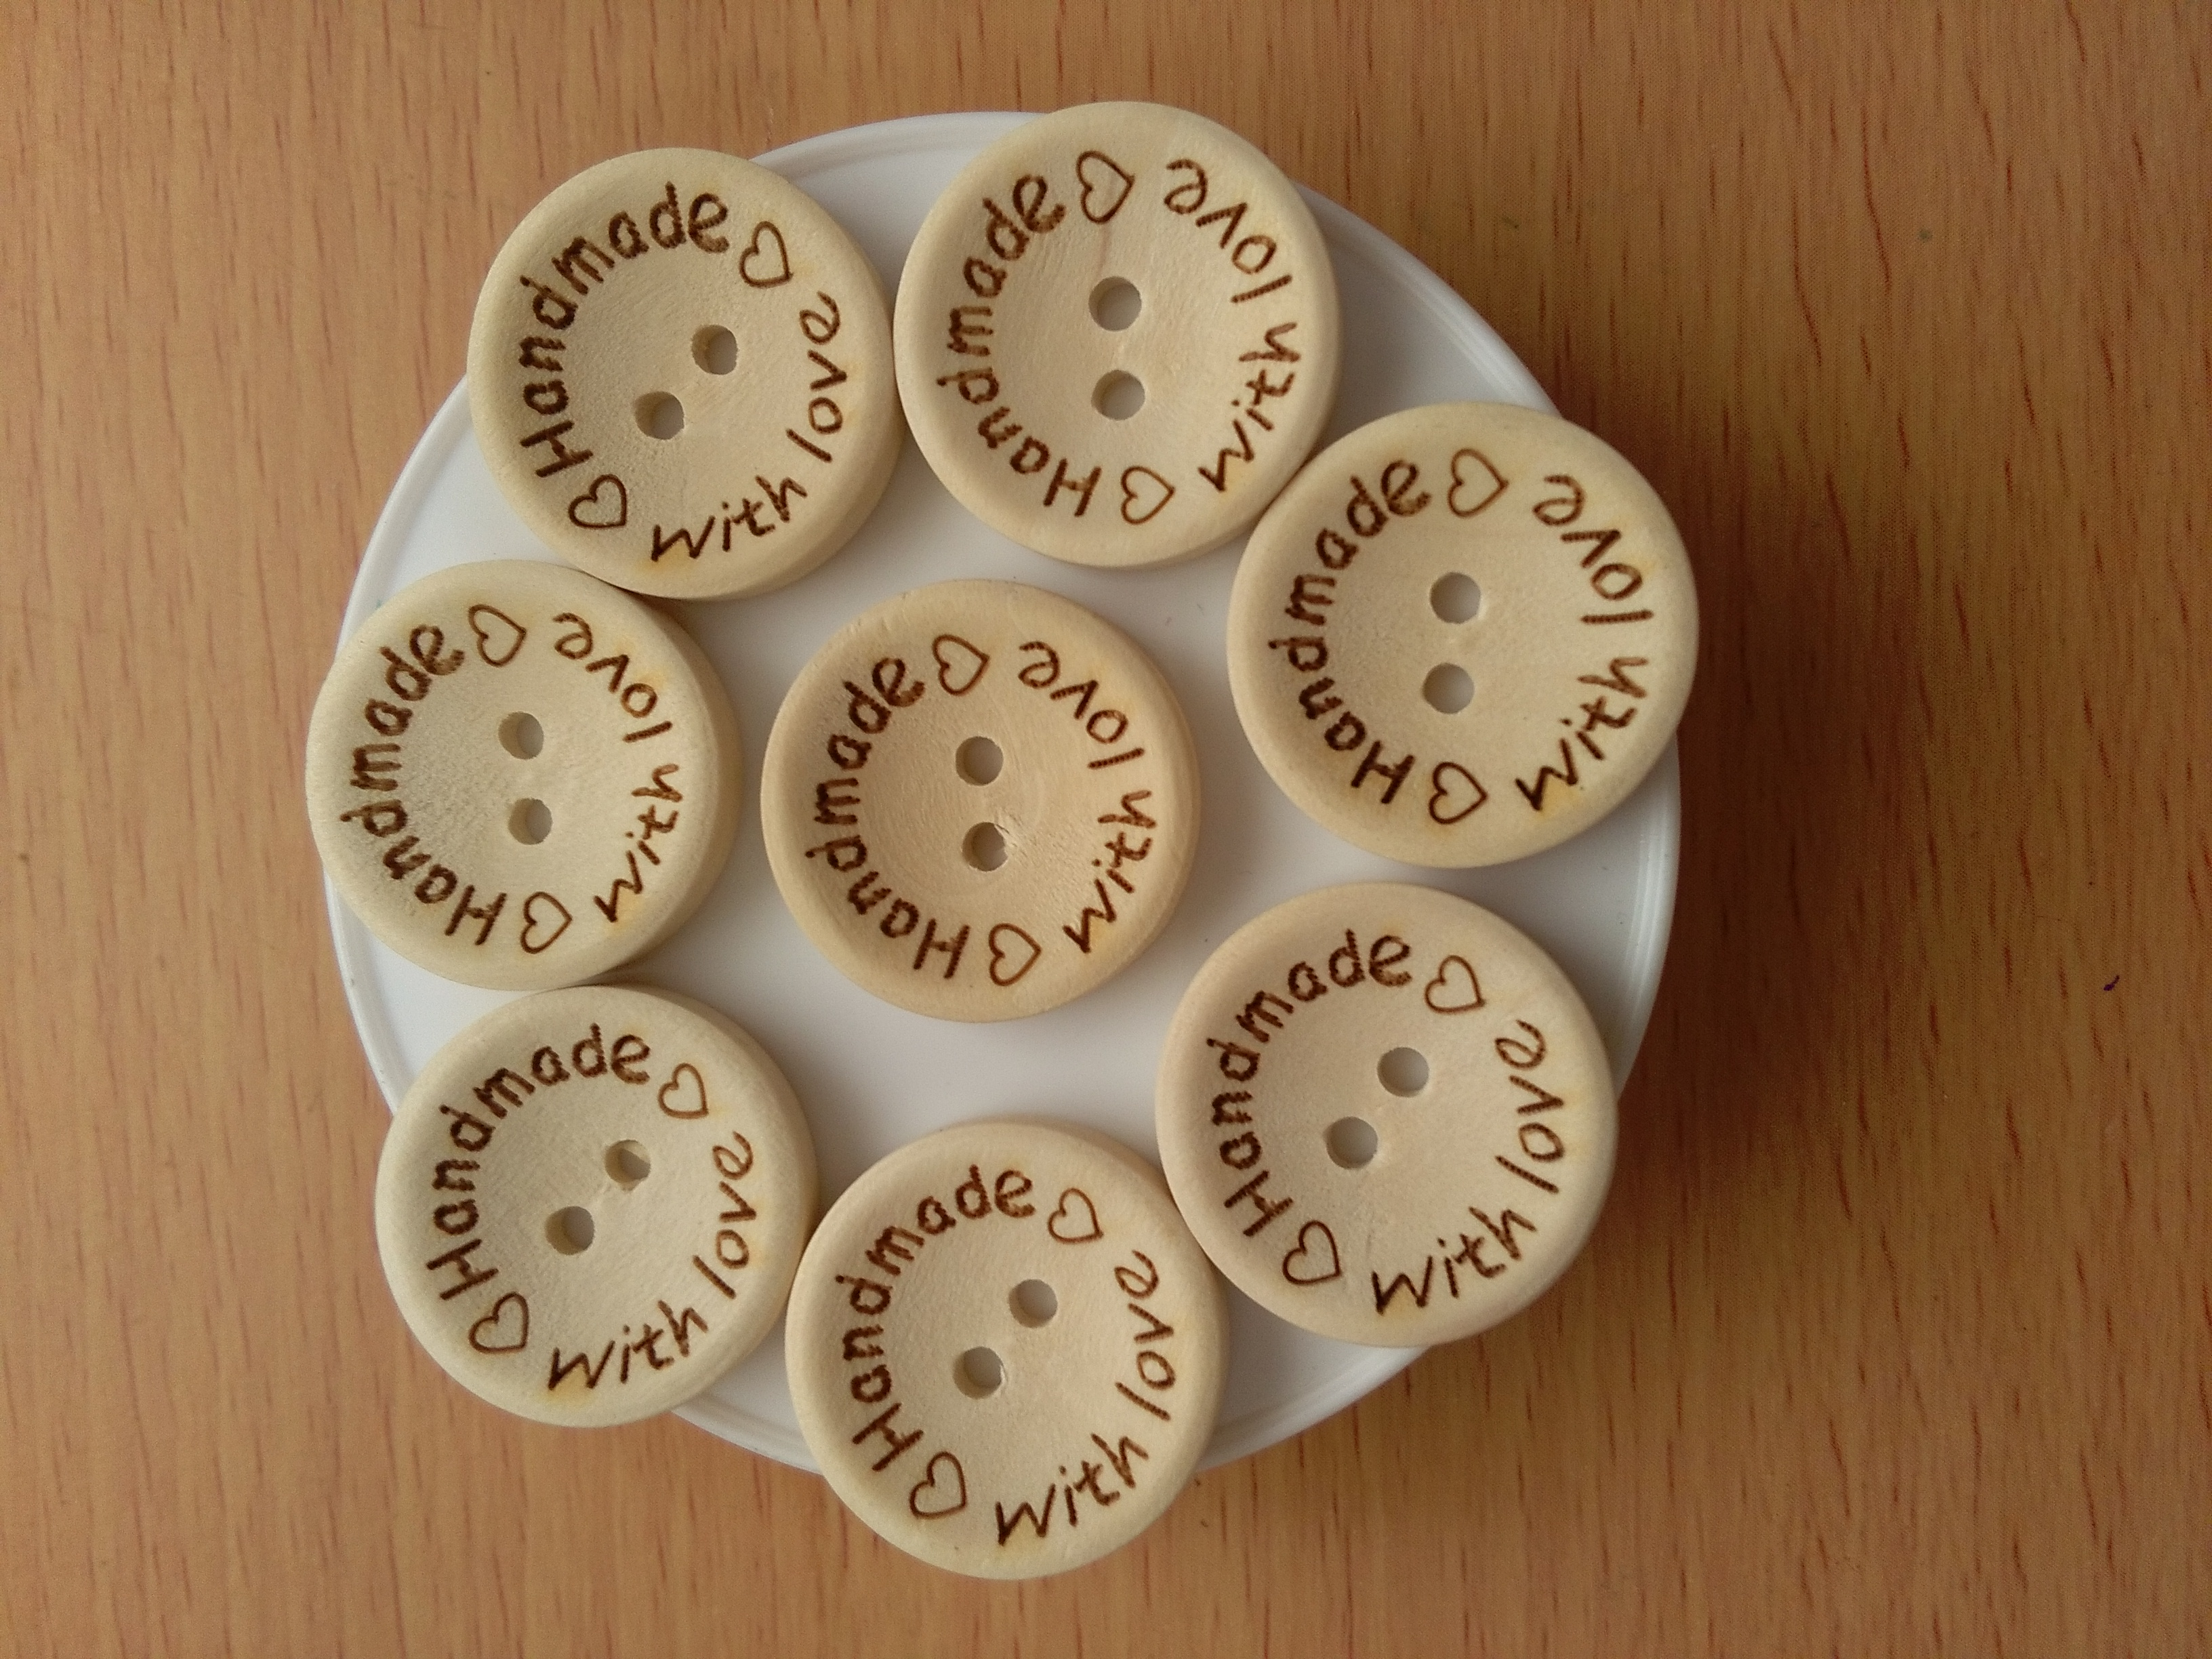 Wooden 20mm Handmade with Love Buttons